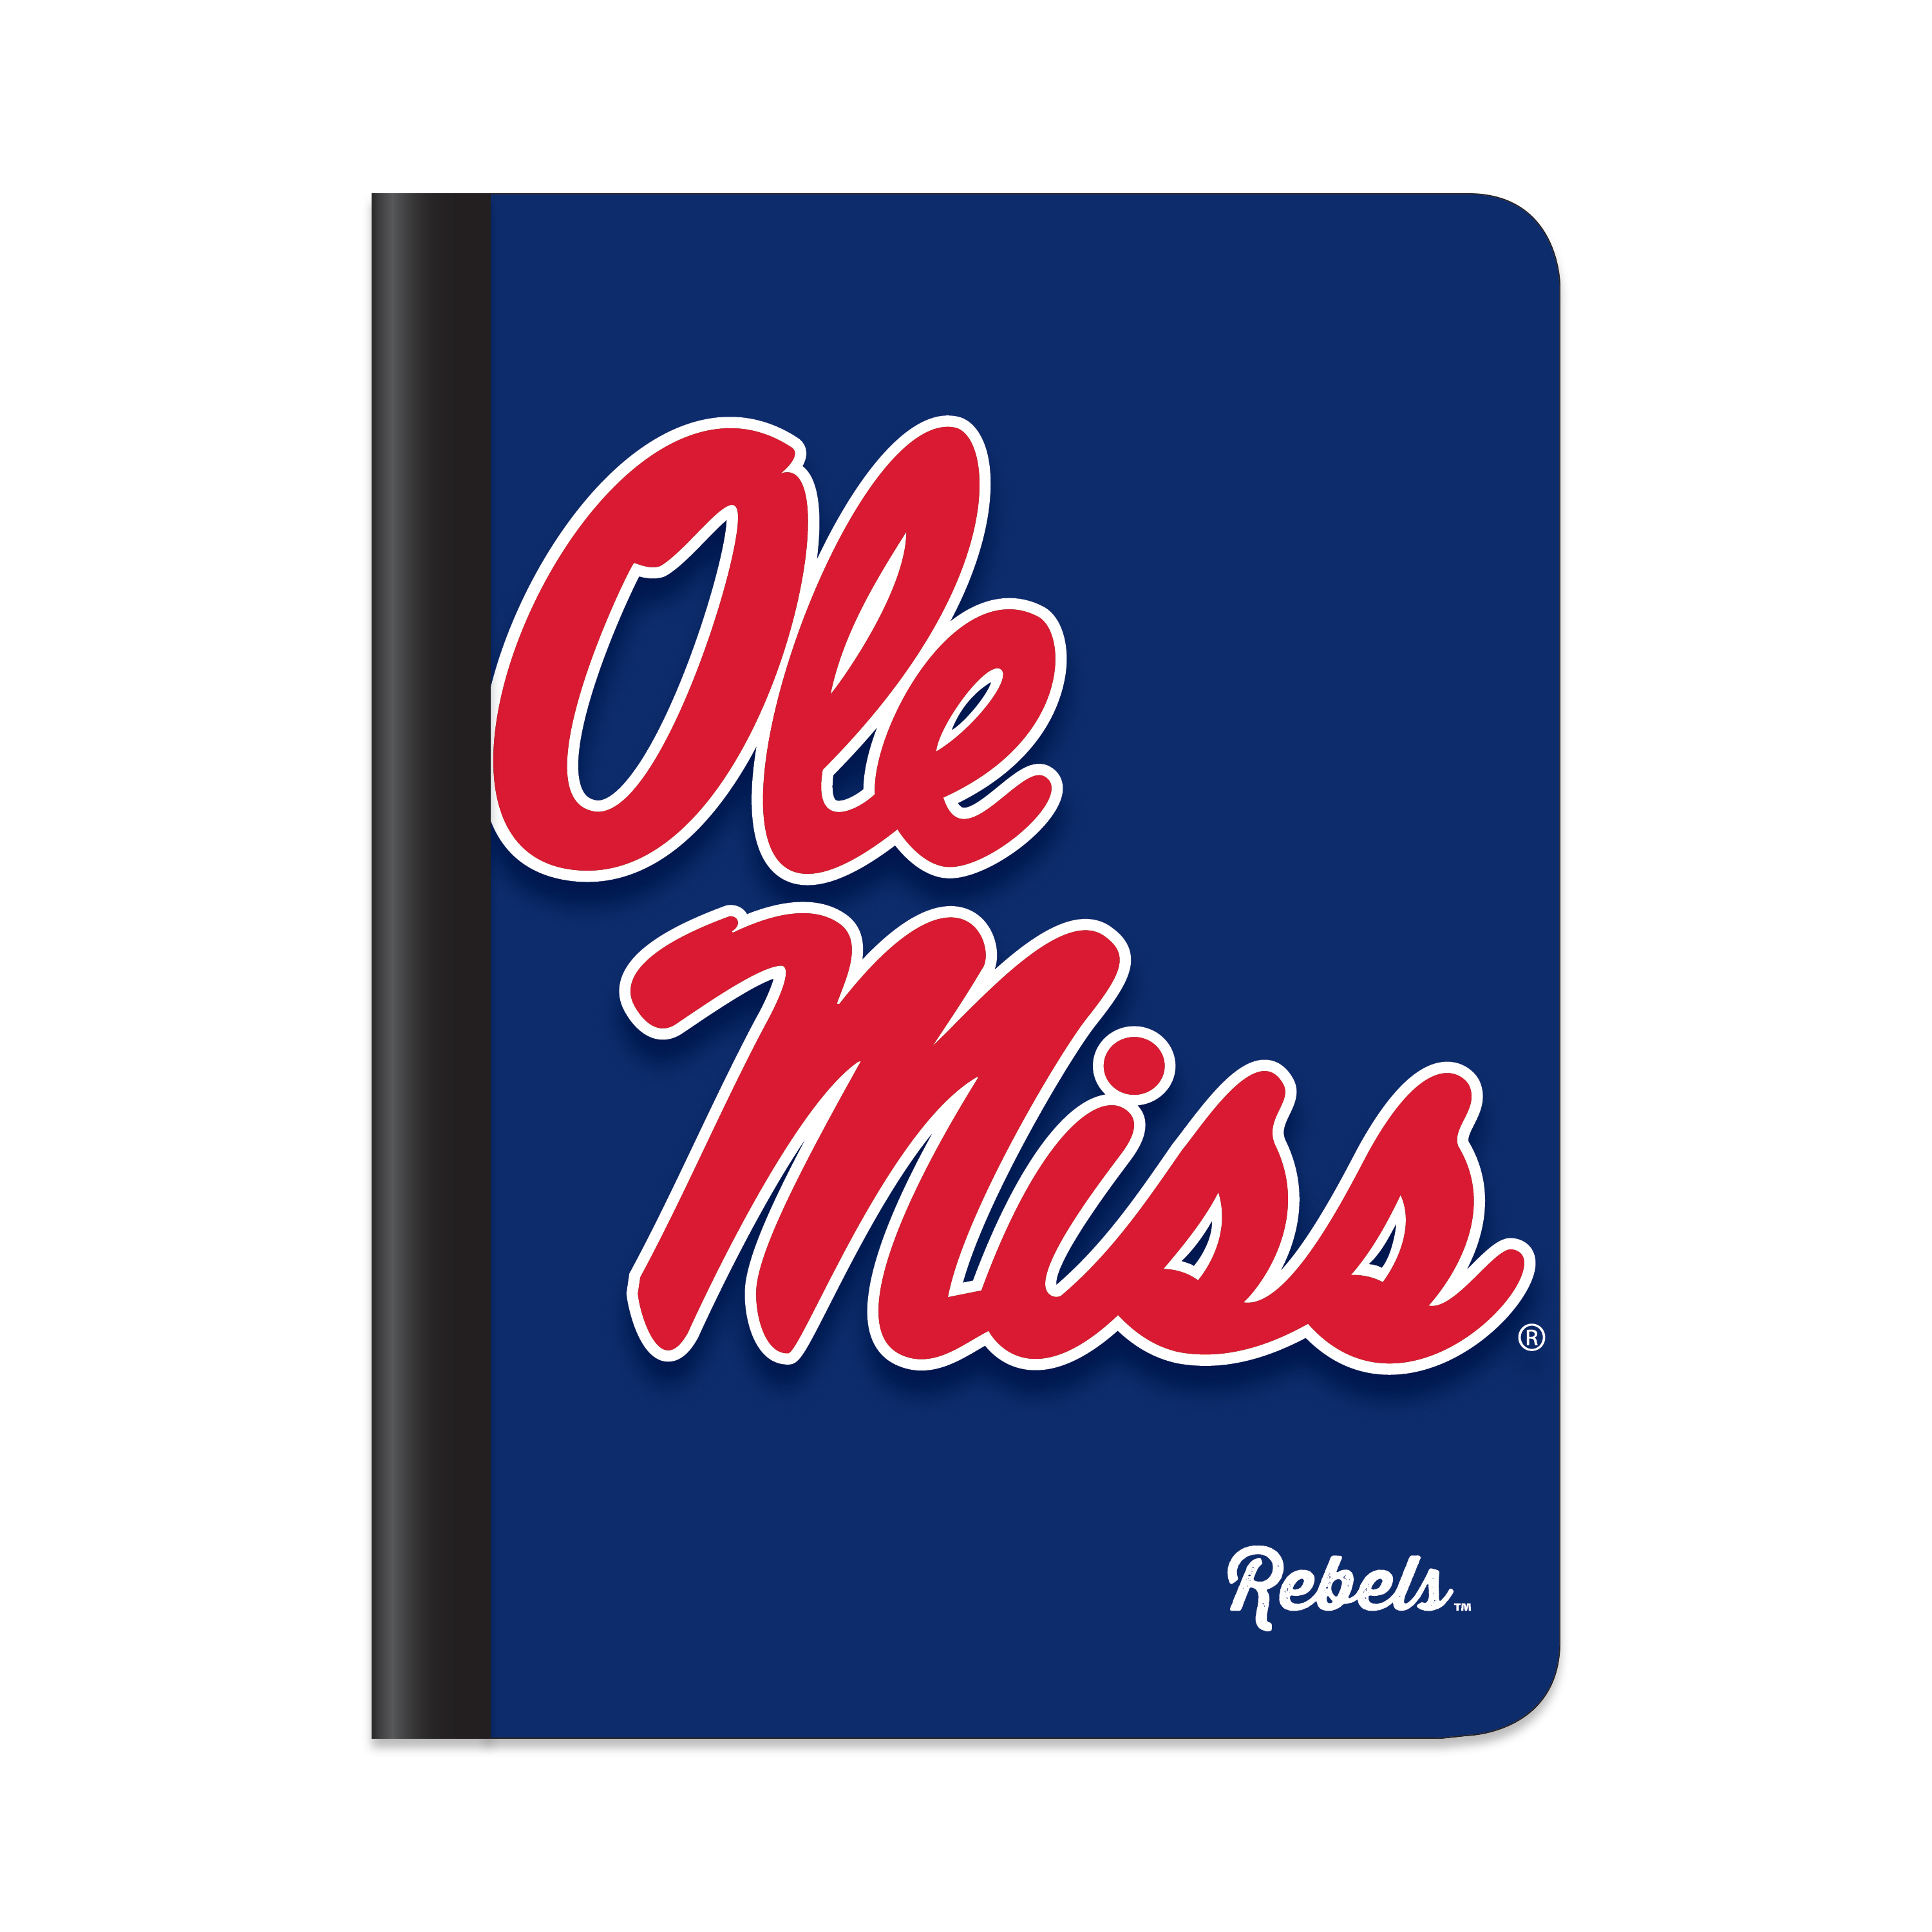 MISS REBELS CLASSIC COMPOSITION BOOK